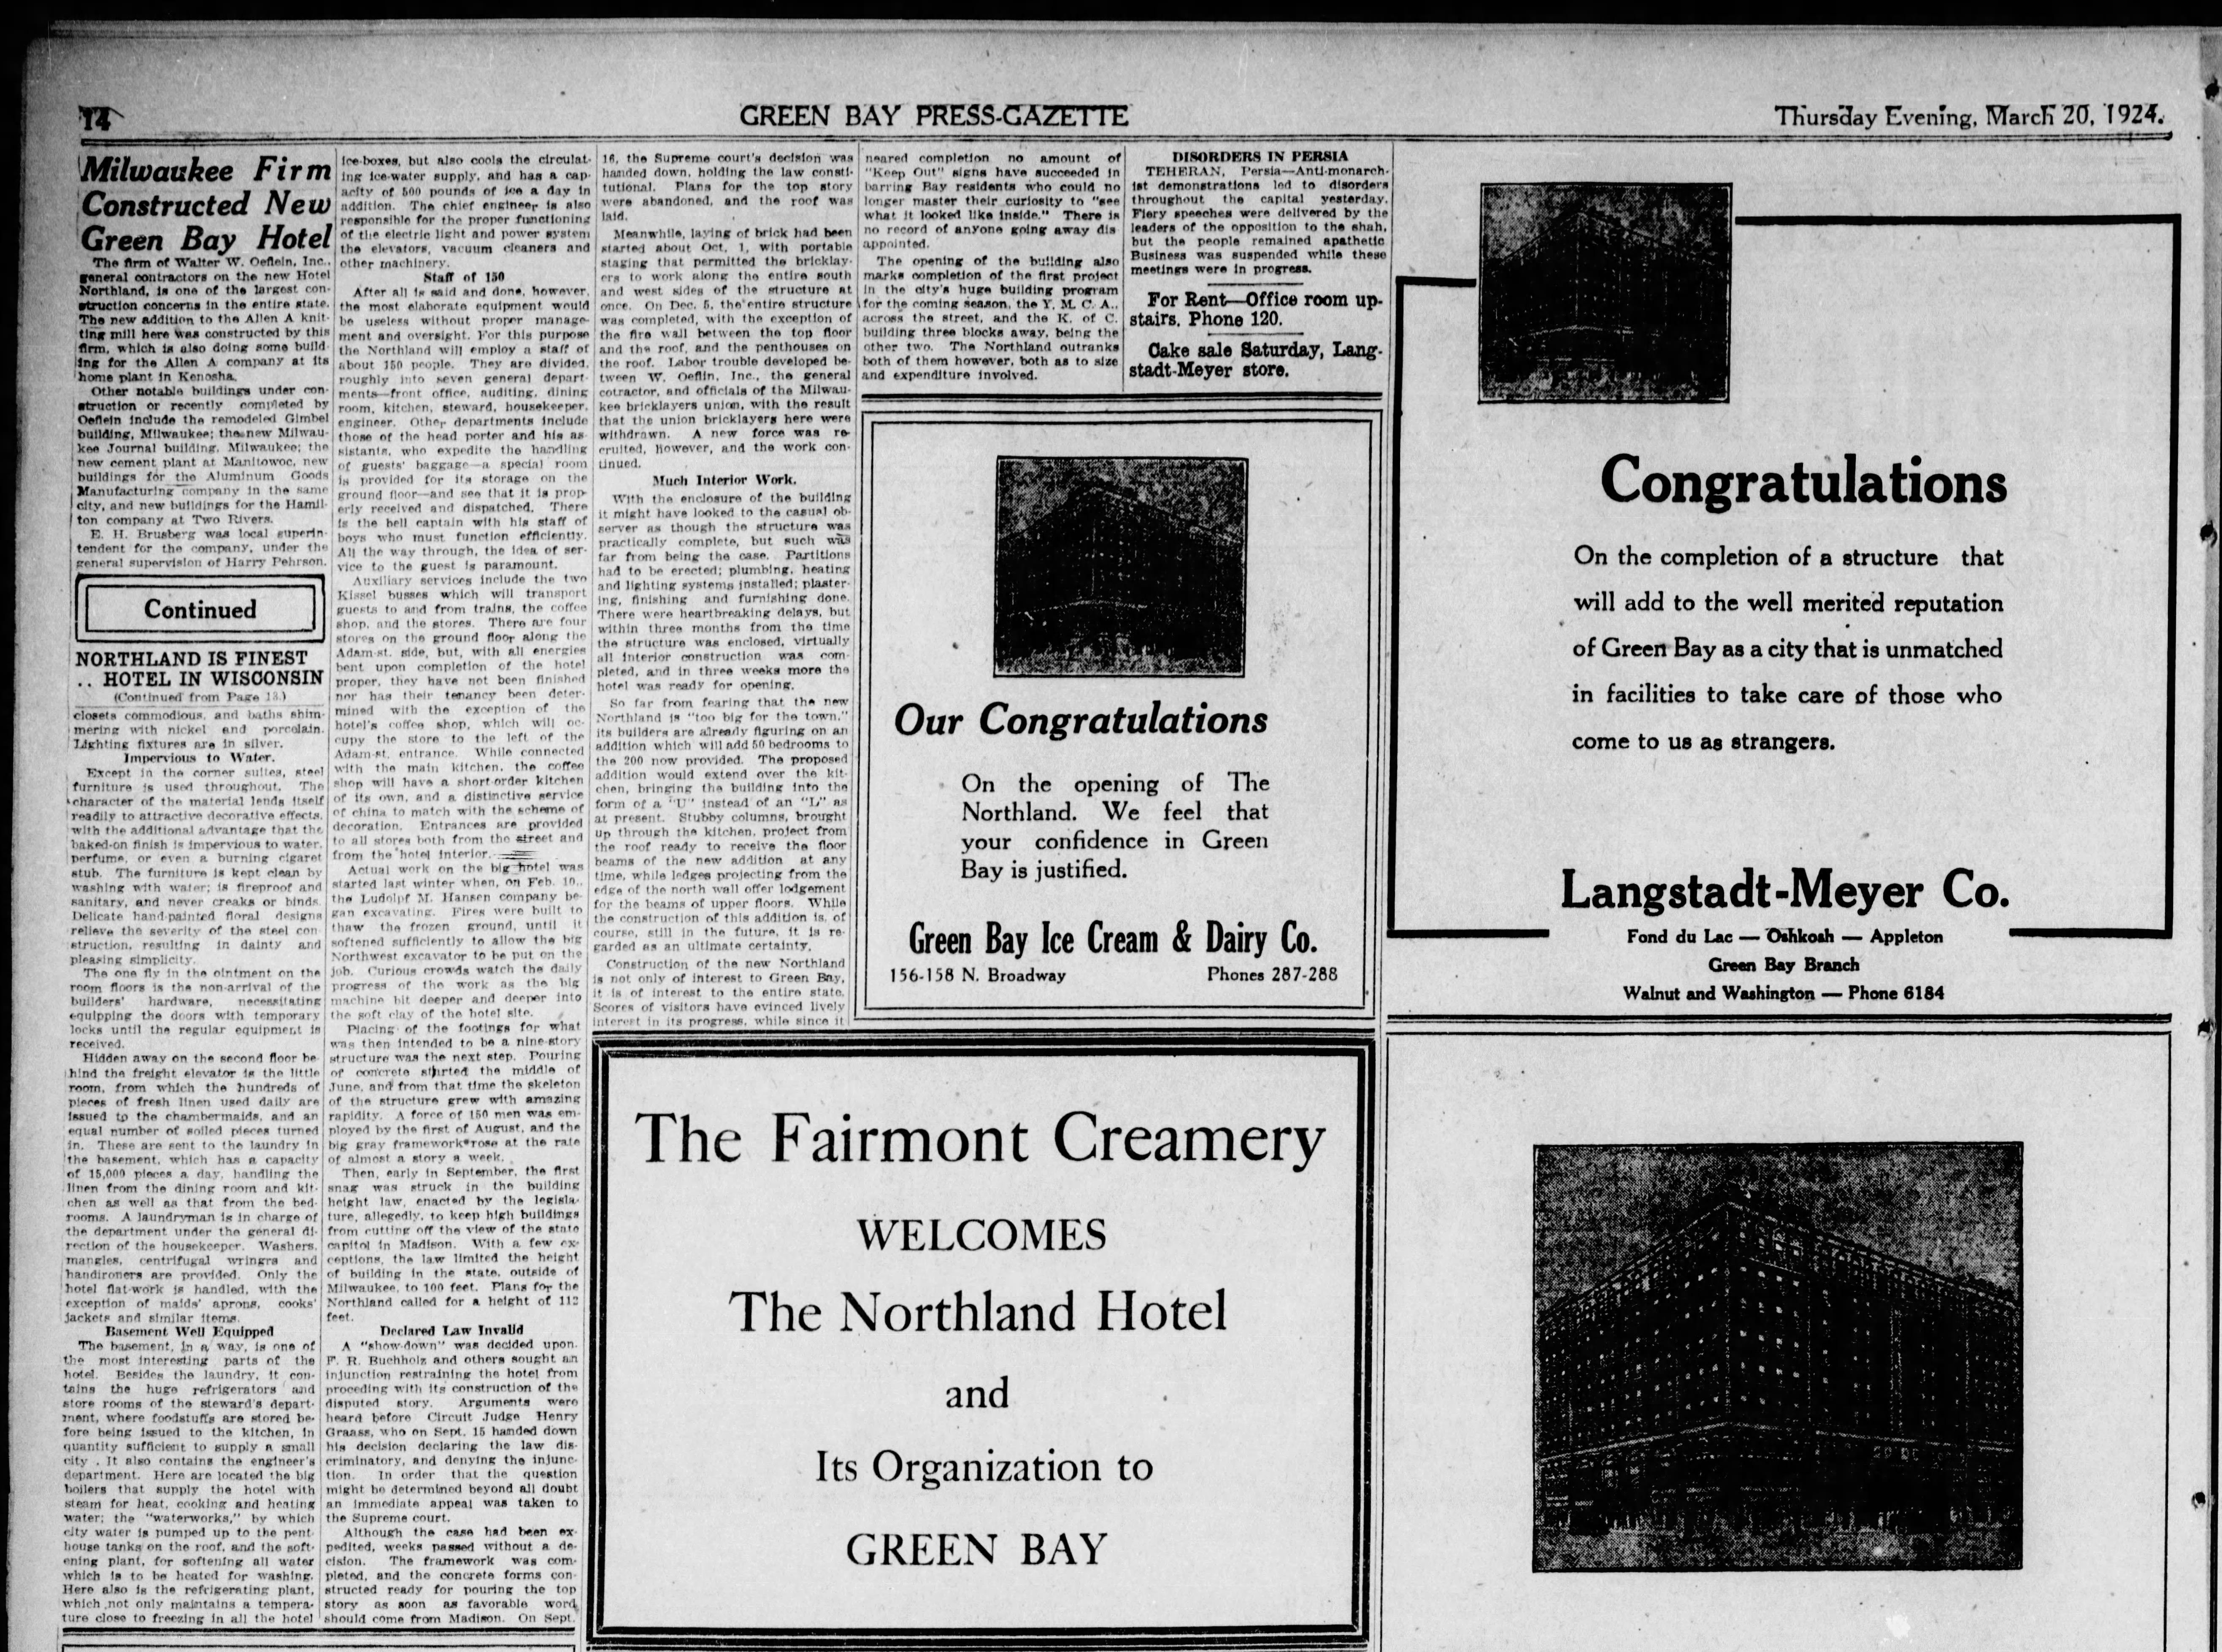 A story and advertising in a March 20, 1924 special section in the Green Bay Press Gazette announcing the opening of the Hotel Northland.